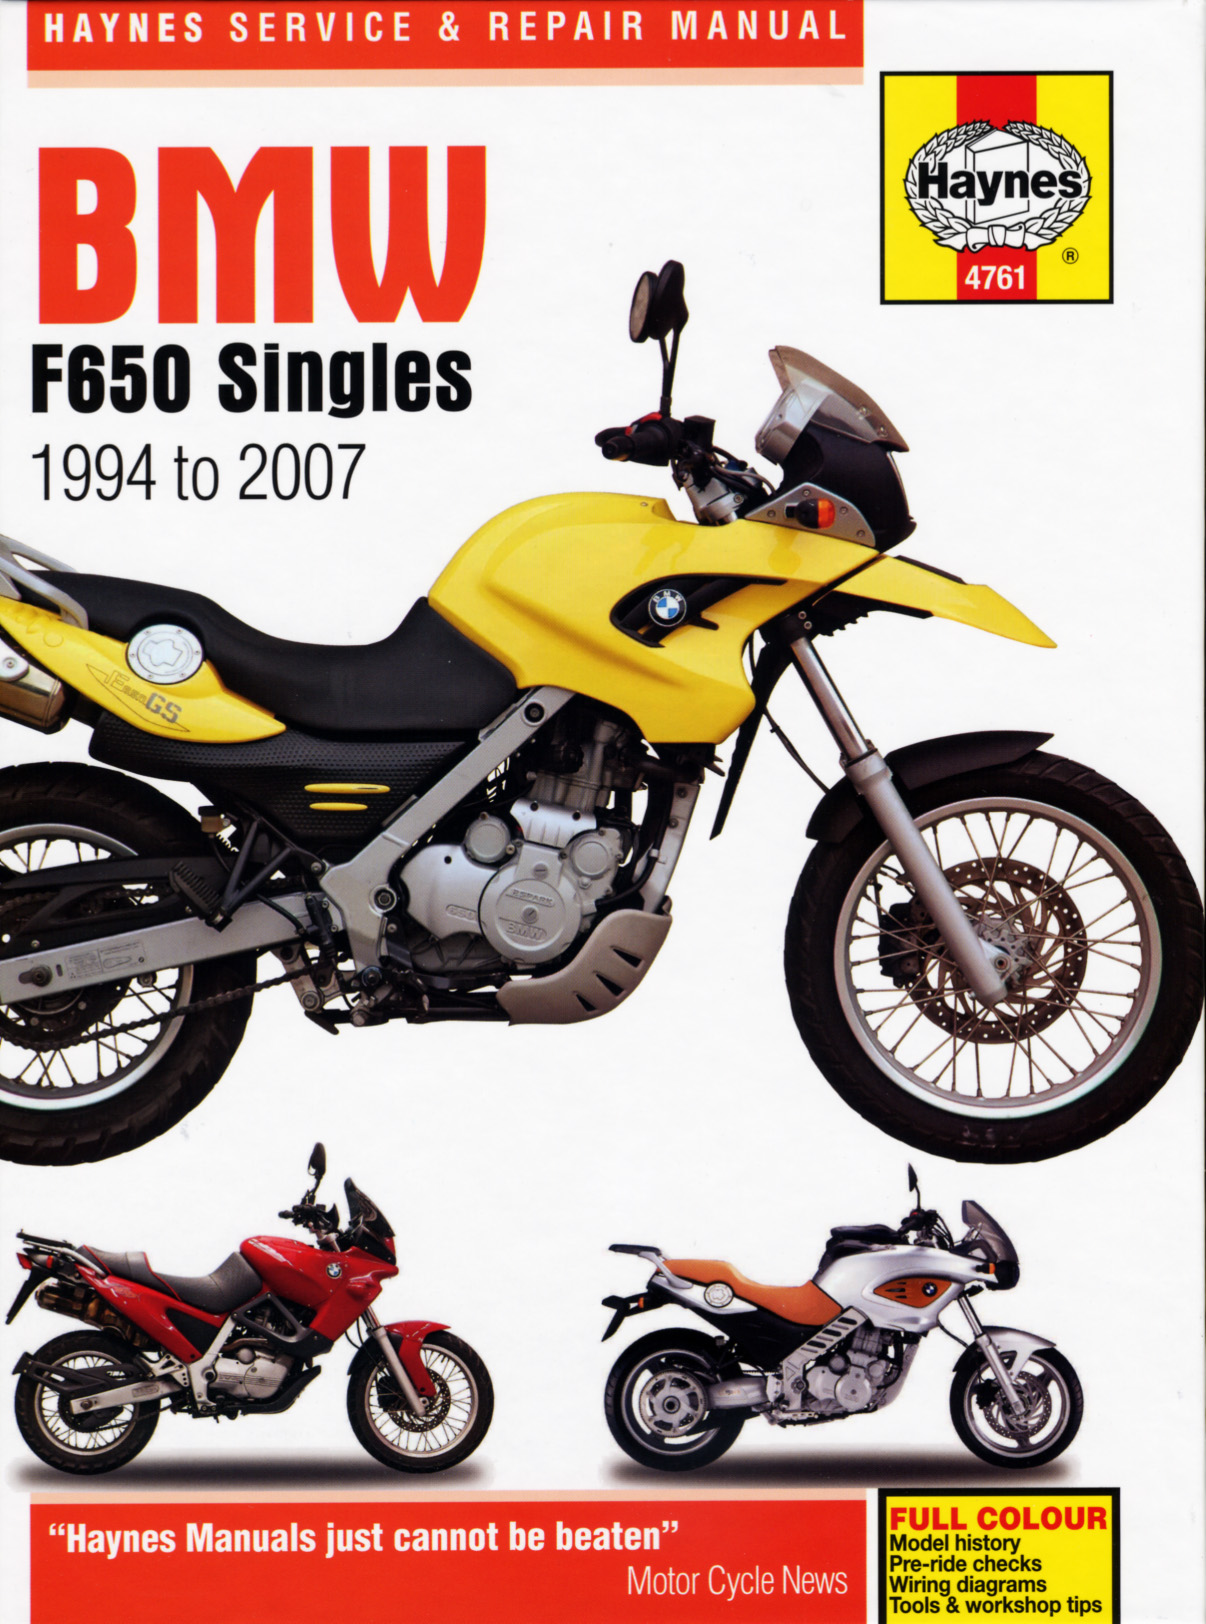 BMW F650 Singles (94-07) Haynes Repair Manual | Haynes Manuals